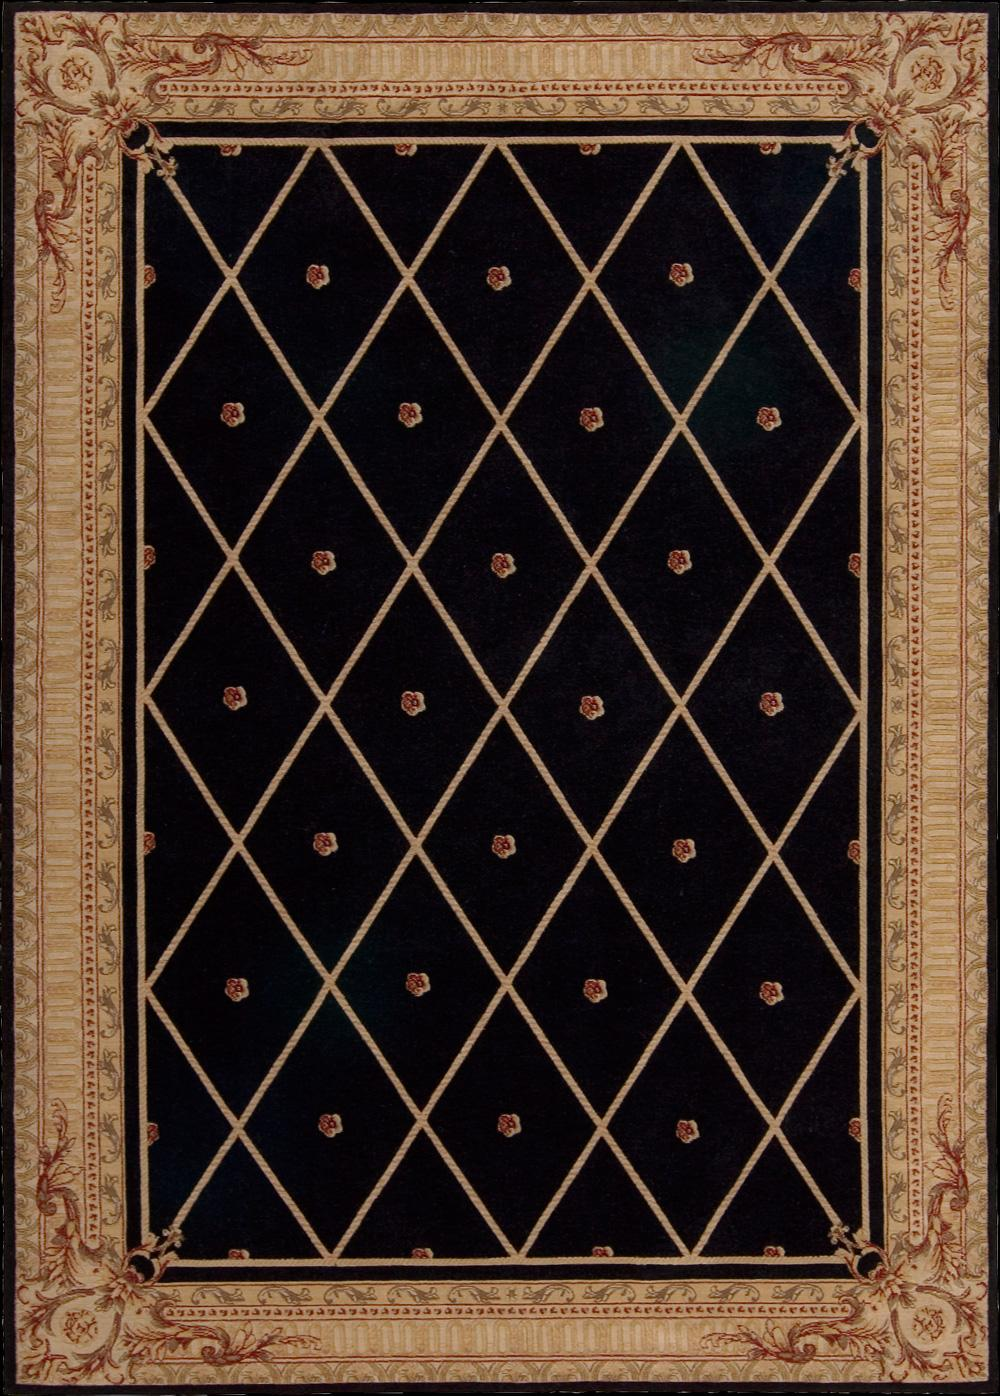 "Nourison Ashton House Area Rug 7'9"" x 10'10"" - Item Number: 26457"